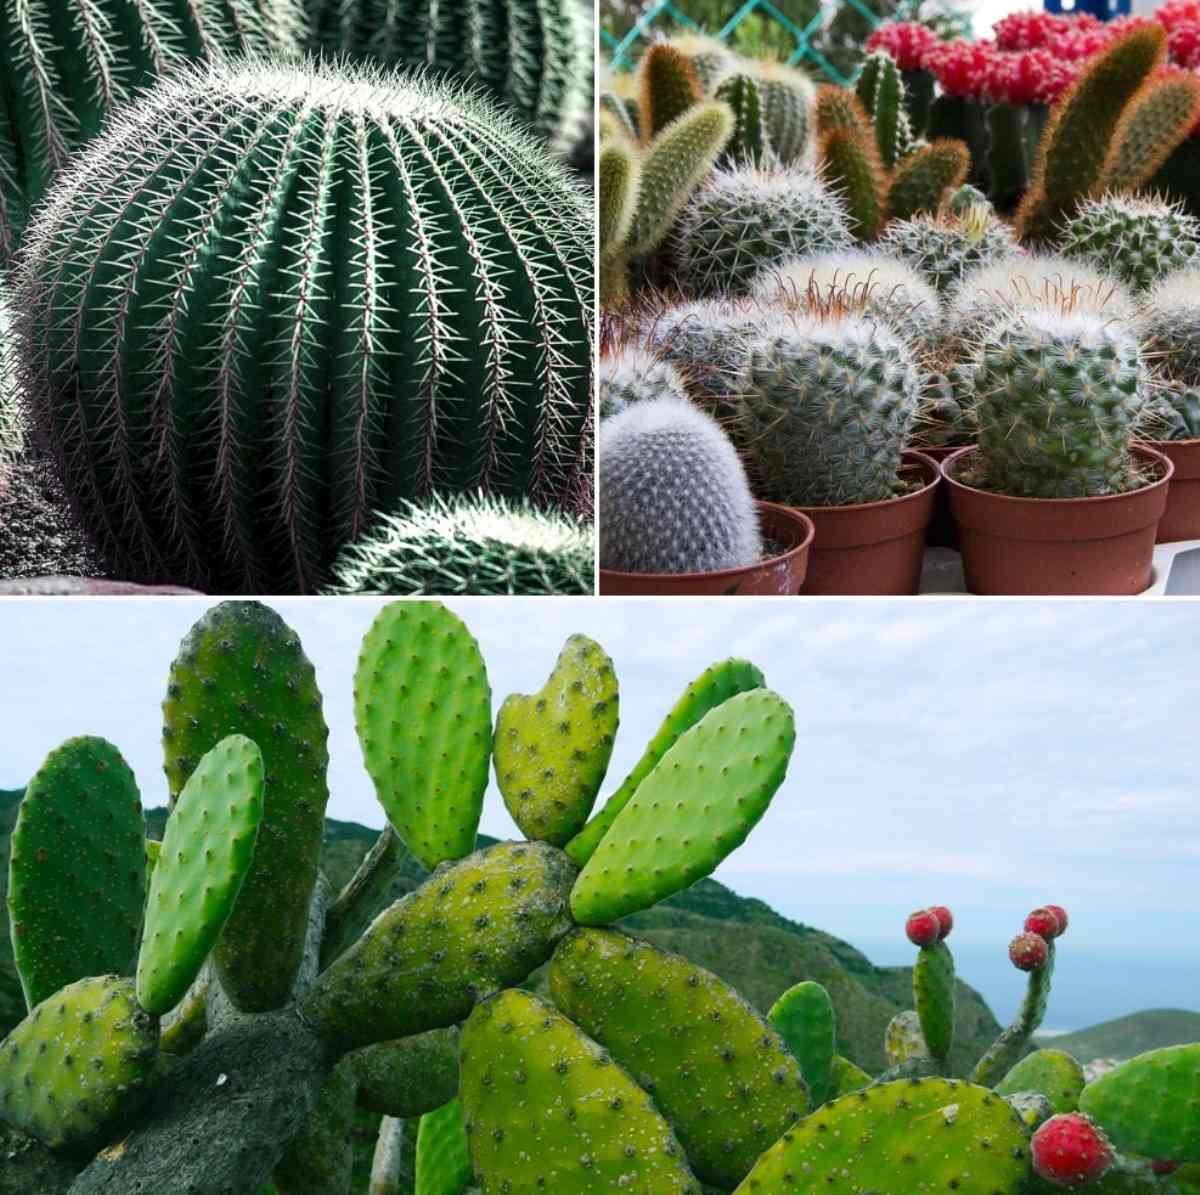 Growing Tips for Cactus.